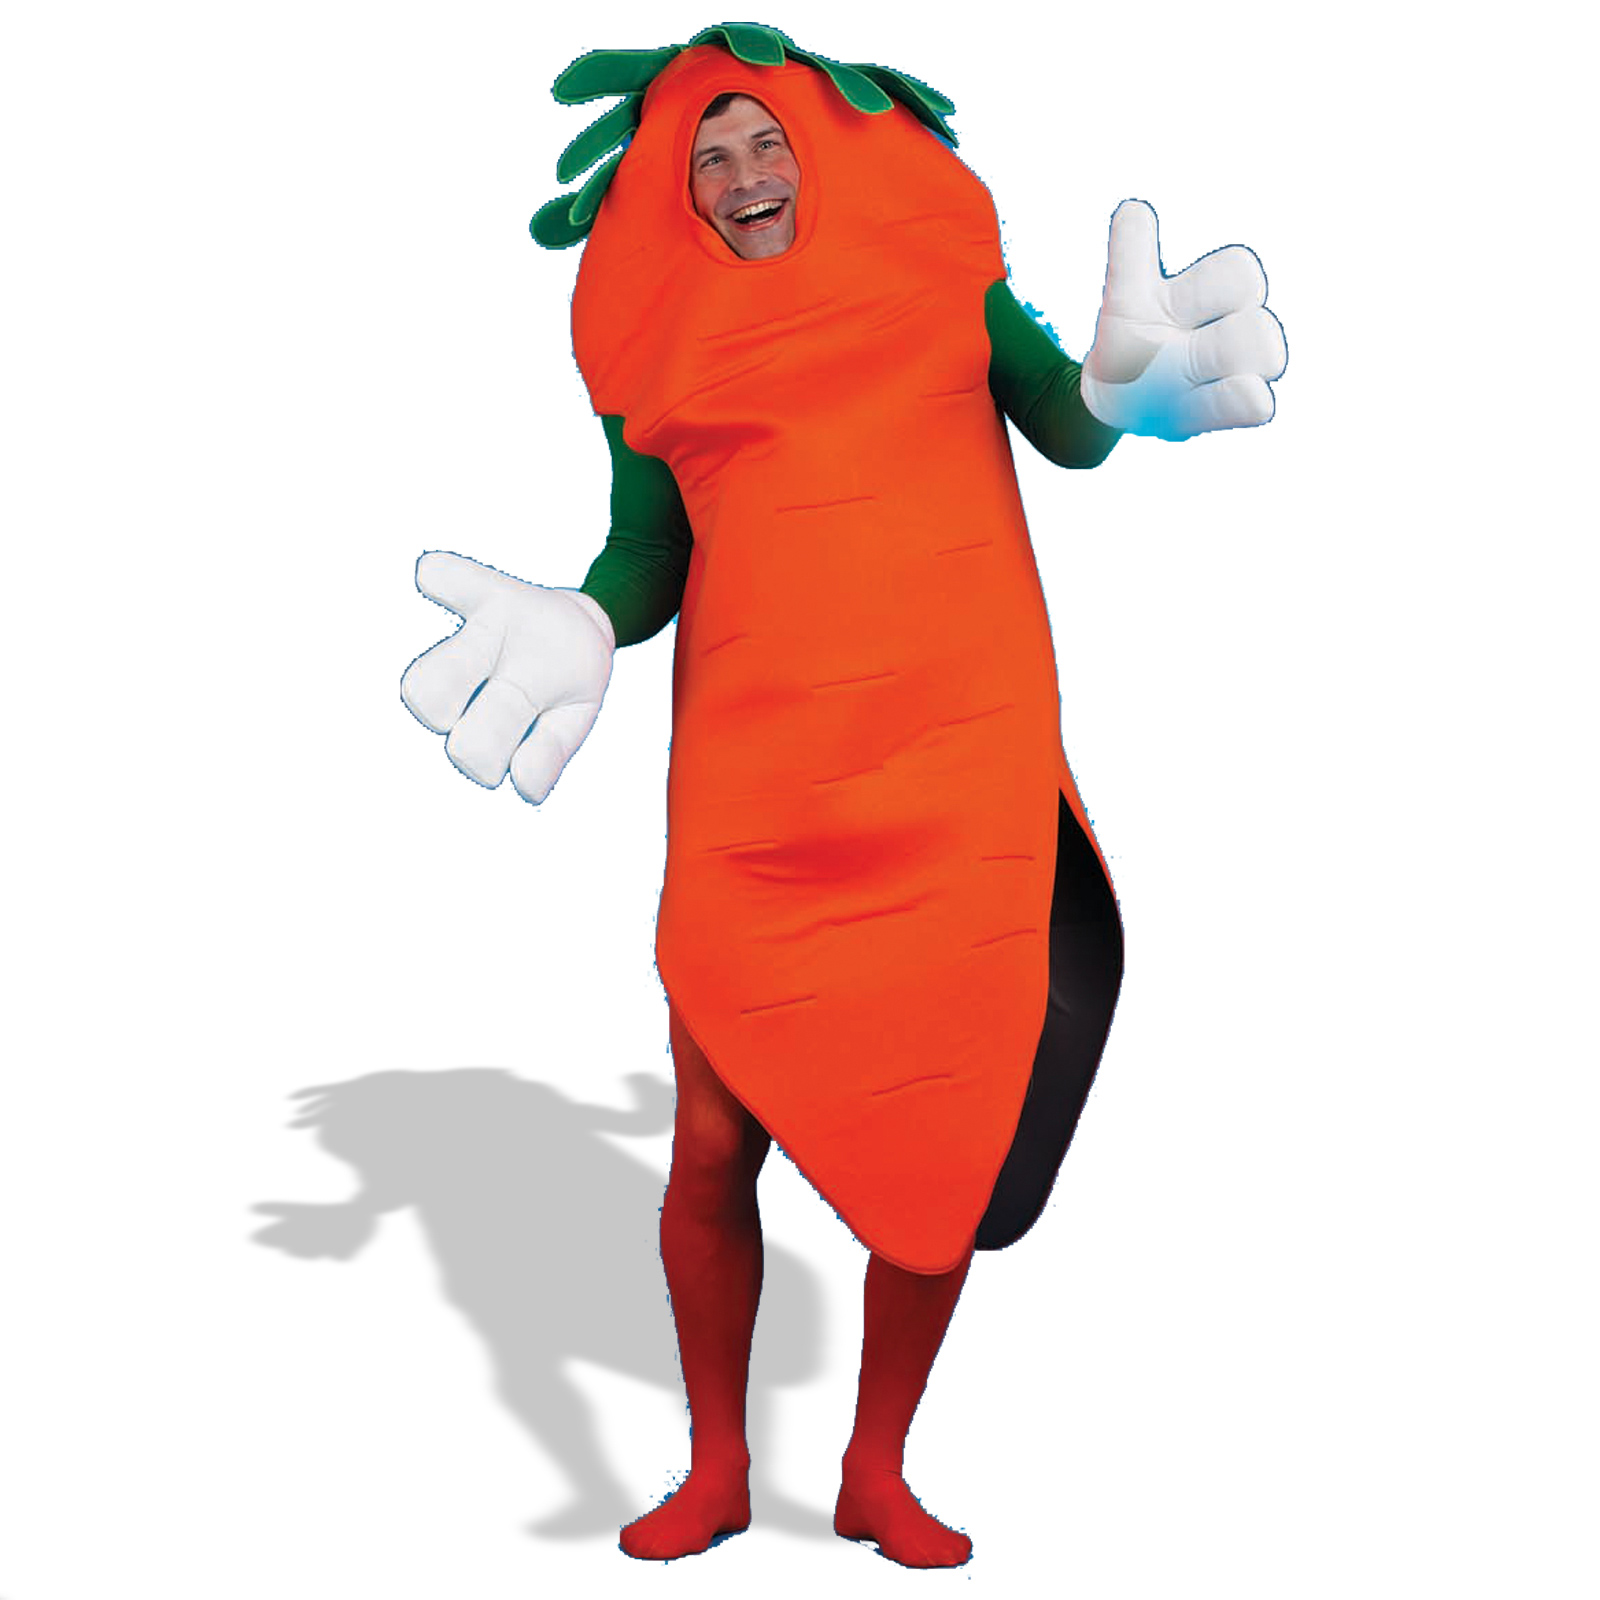 In Britain, it is acceptable to dress as a carrot at funerals